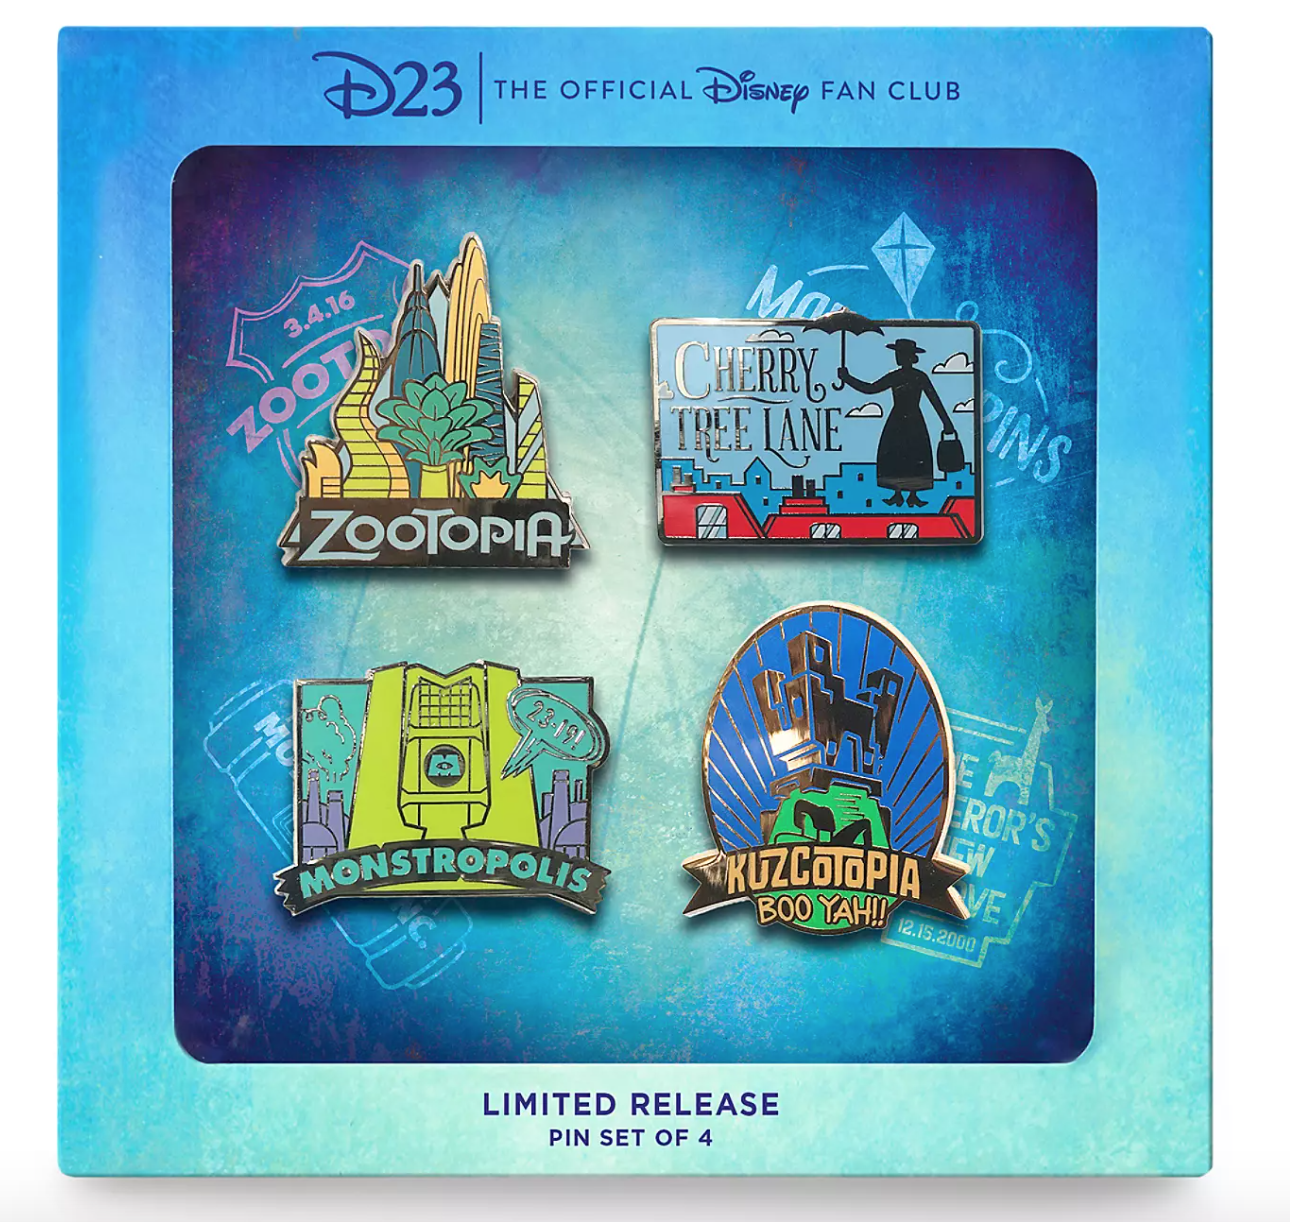 Pssst You Can Score The New Disney Fantastic Worlds Pin Set For Free With This D23 Membership Offer Allears Net